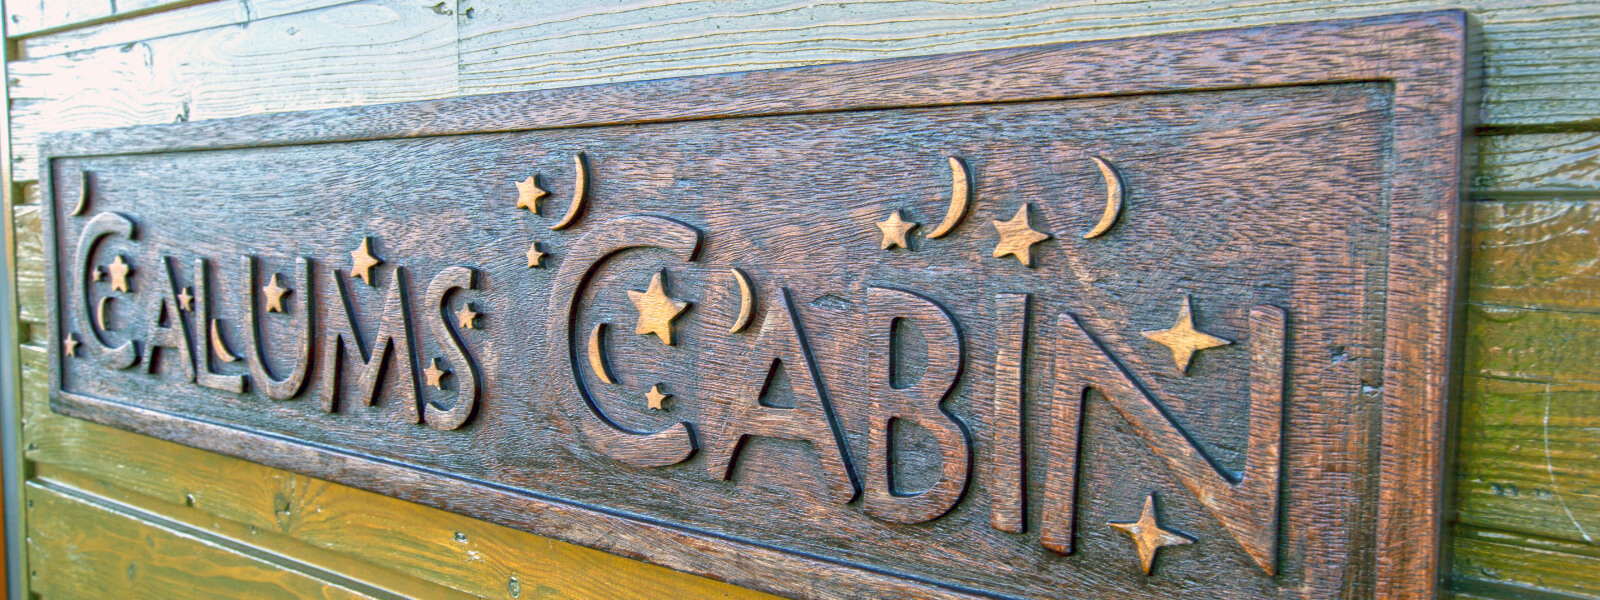 Wooden sign on wall that has Calums Cabin logo engraved into it.